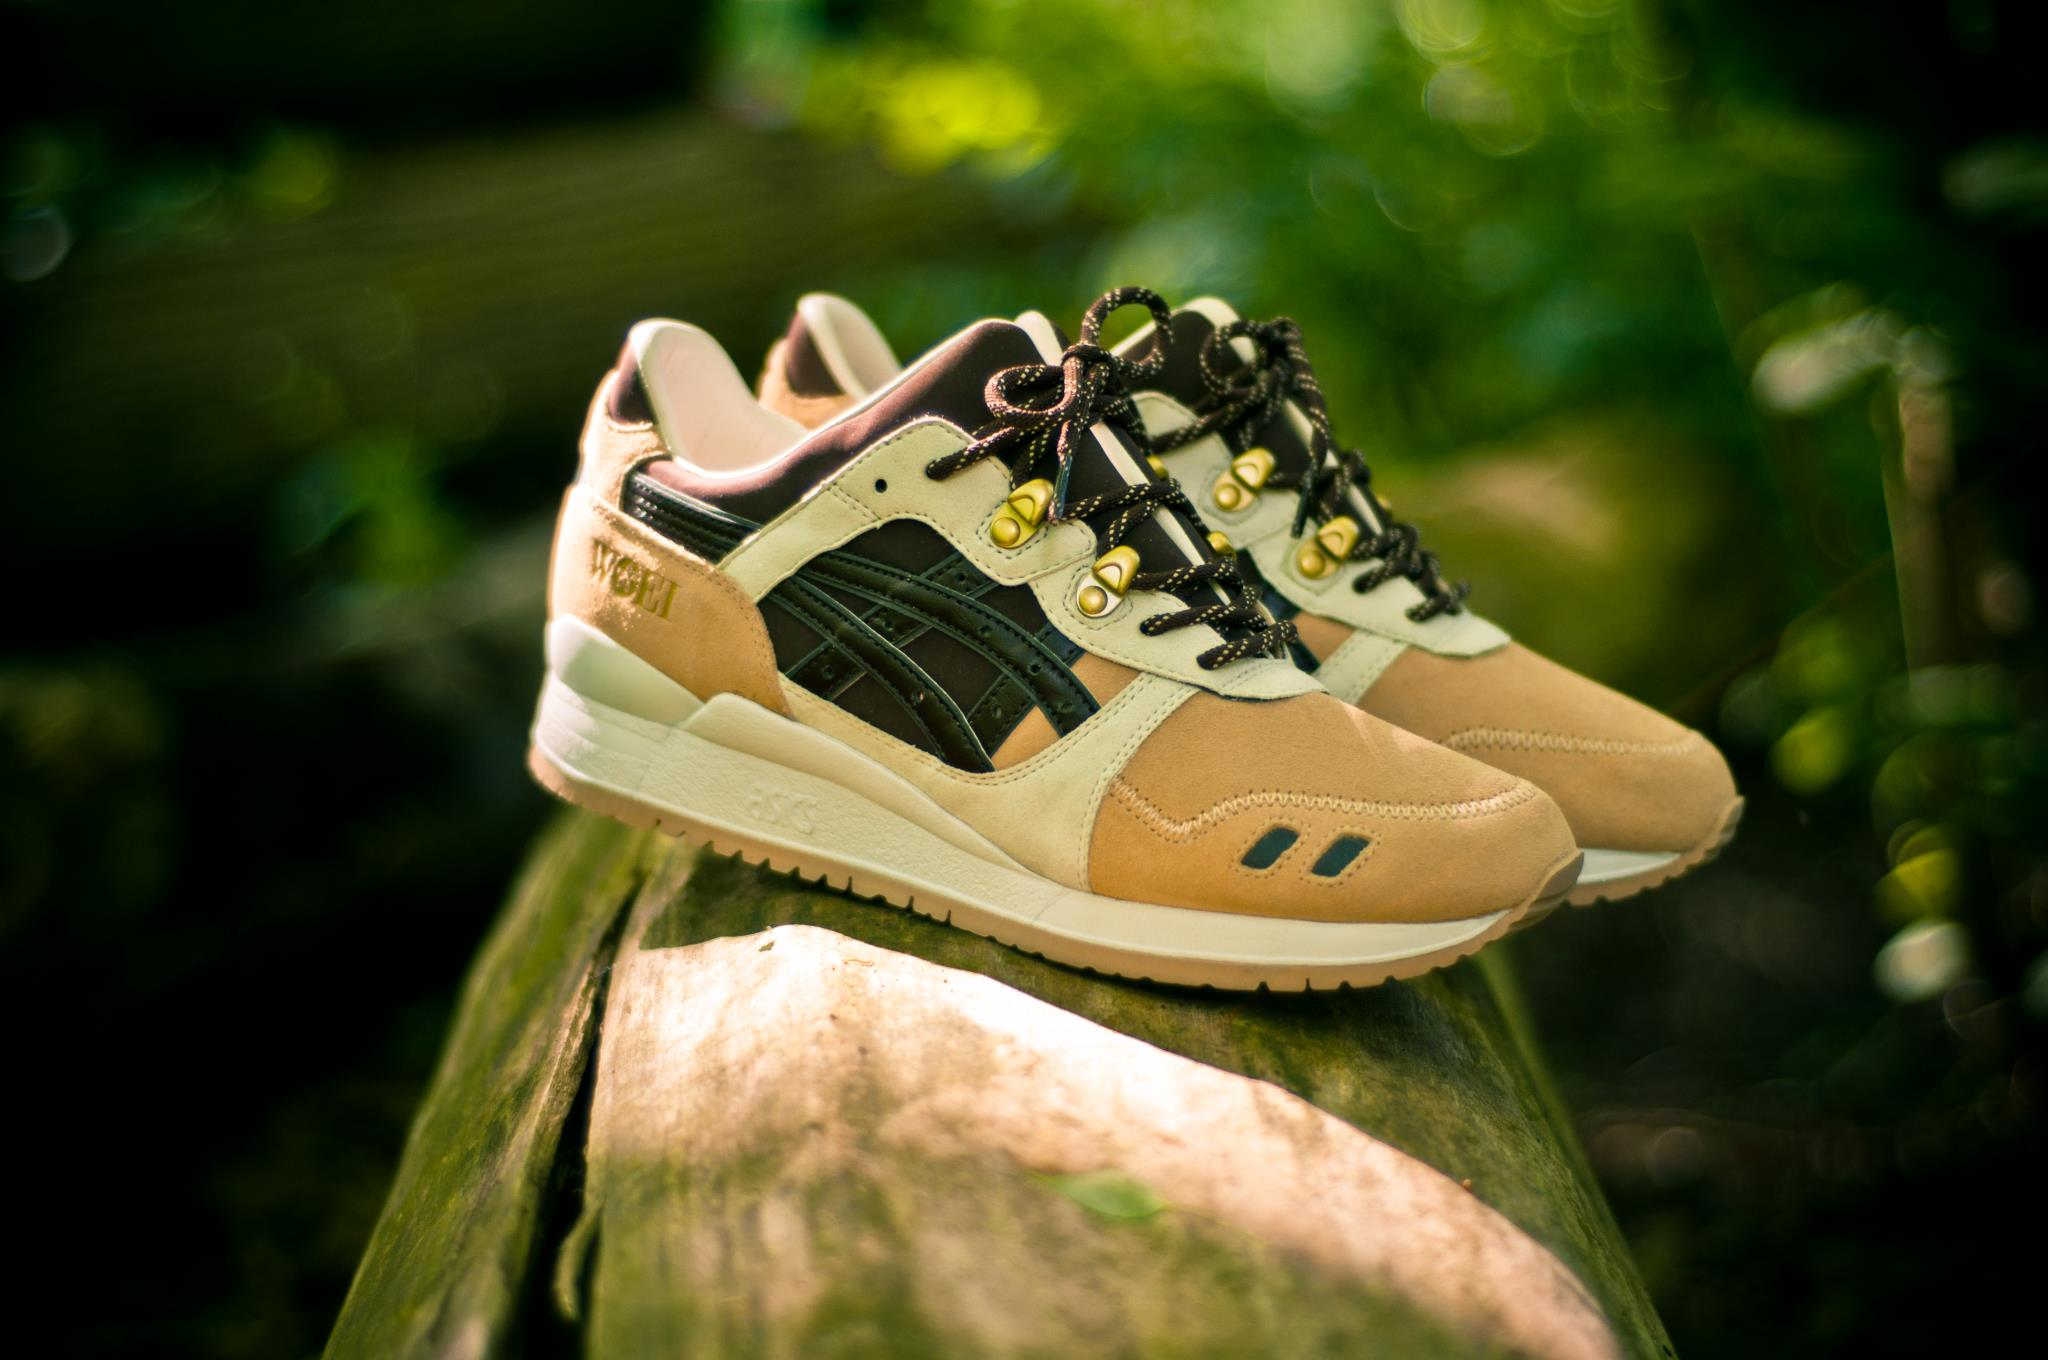 outlet store 3a53b d5563 ASICS x WOEI : CERVIDAE GEL LYTE III / RELEASE 30 06 2012 ...